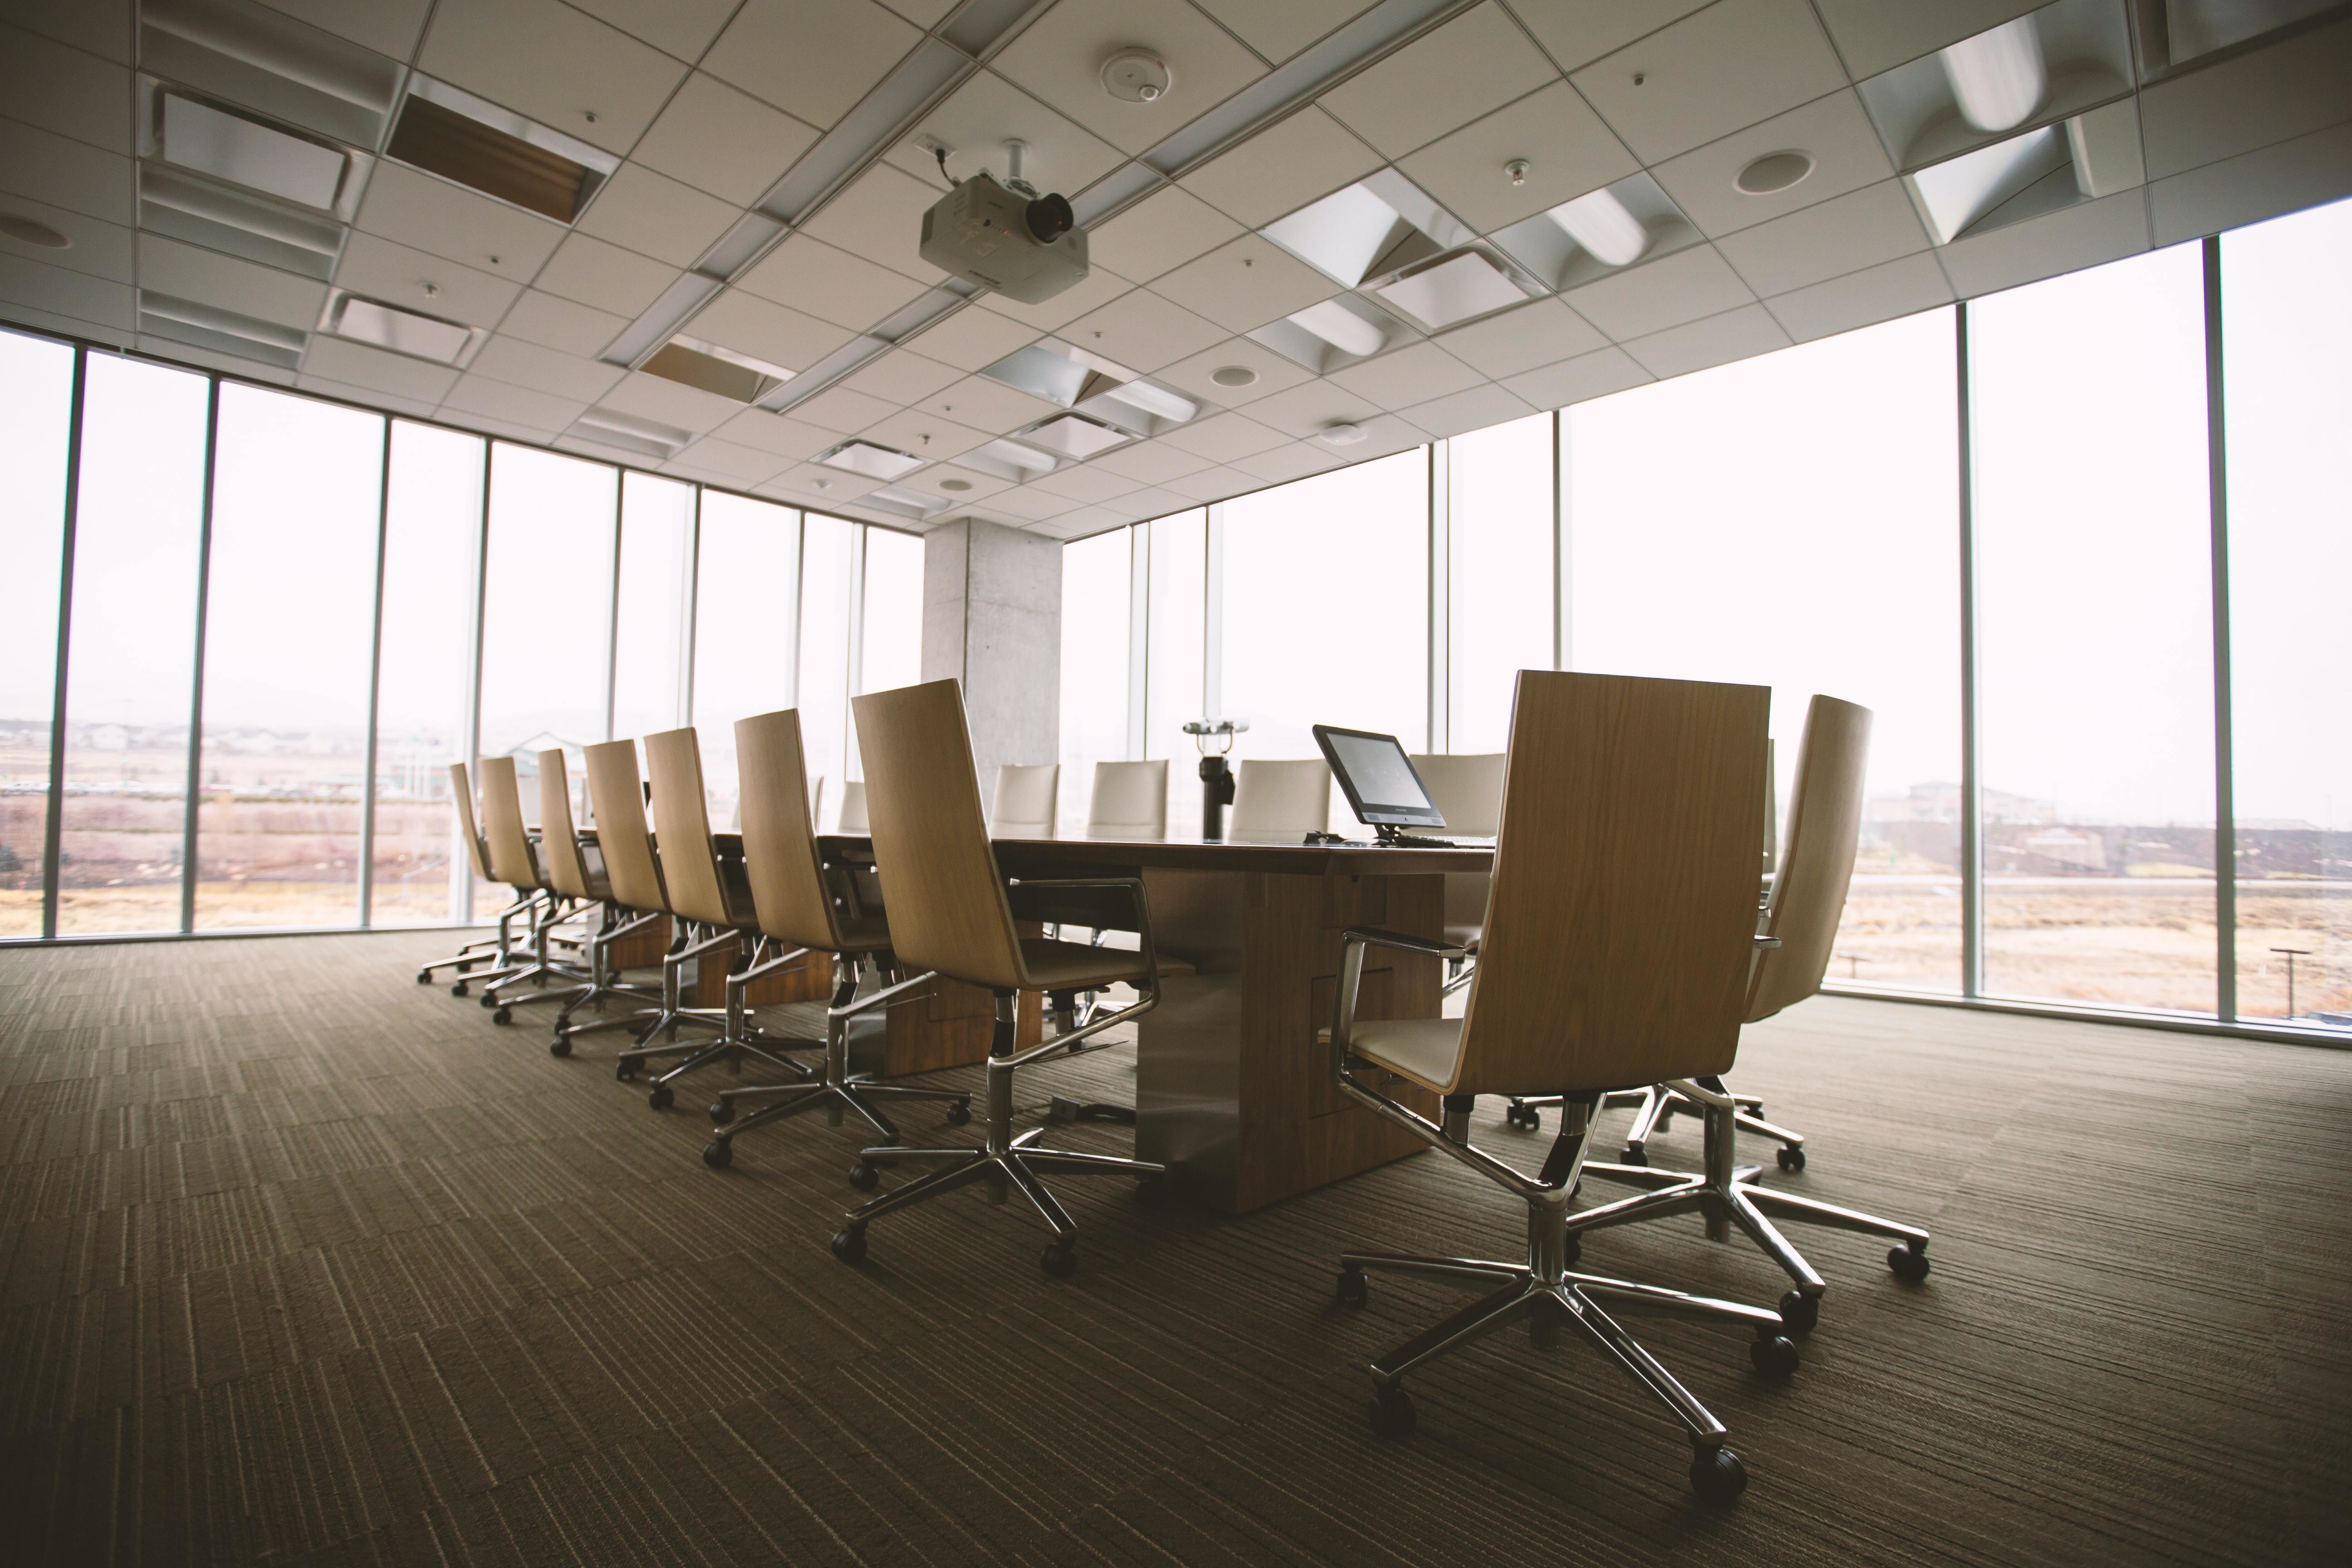 board of directors meeting room roundtable office climate change action sustainable development goals impact summit deloitte forum sdis 2021